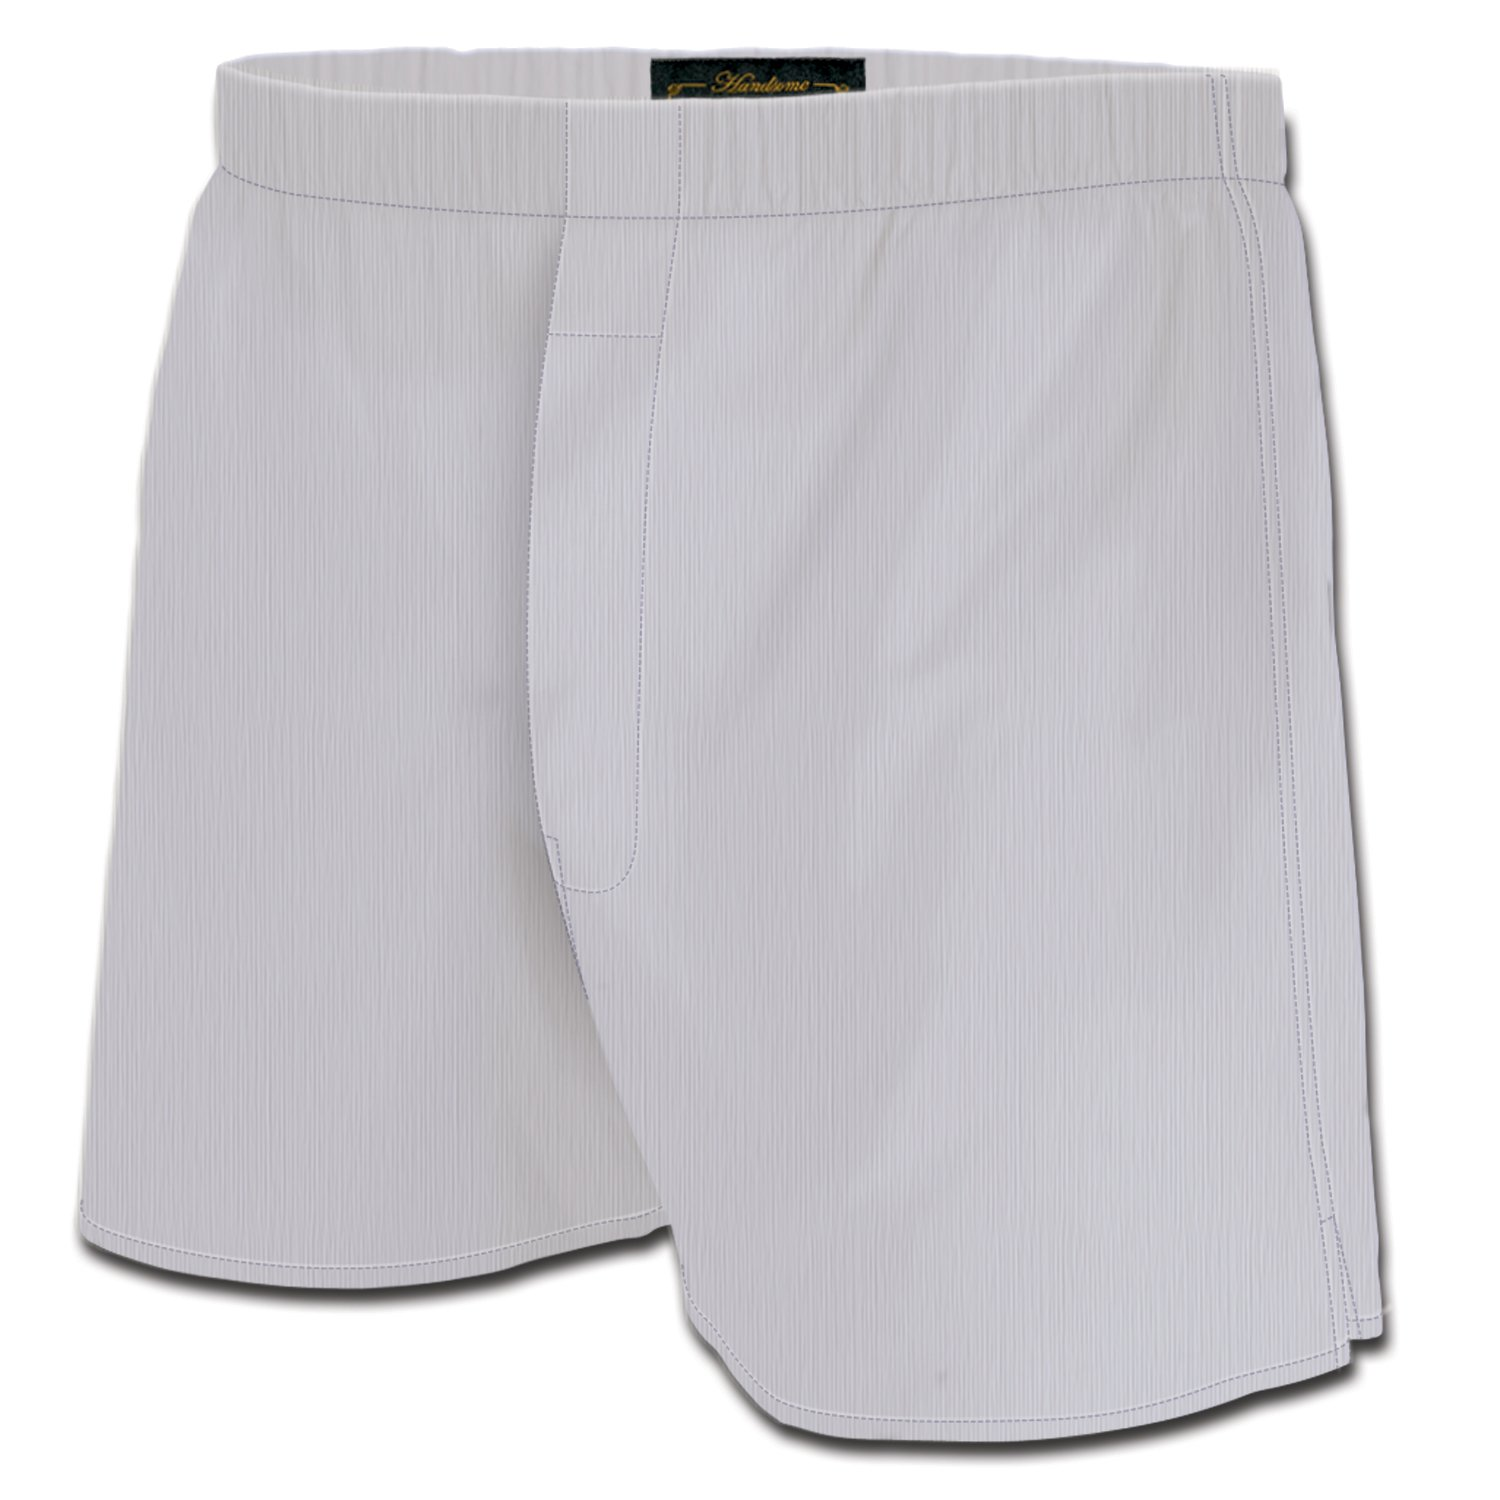 Havana Smooth's Premium Linen Boxers, Cream Md. Lightweight & Super Breathable For Ultra Comfort. Ideal for Golf, Beach Lounging, Summer Travel & Fun. Luxury Mens Boxer Shorts Are a Great Dad Gift